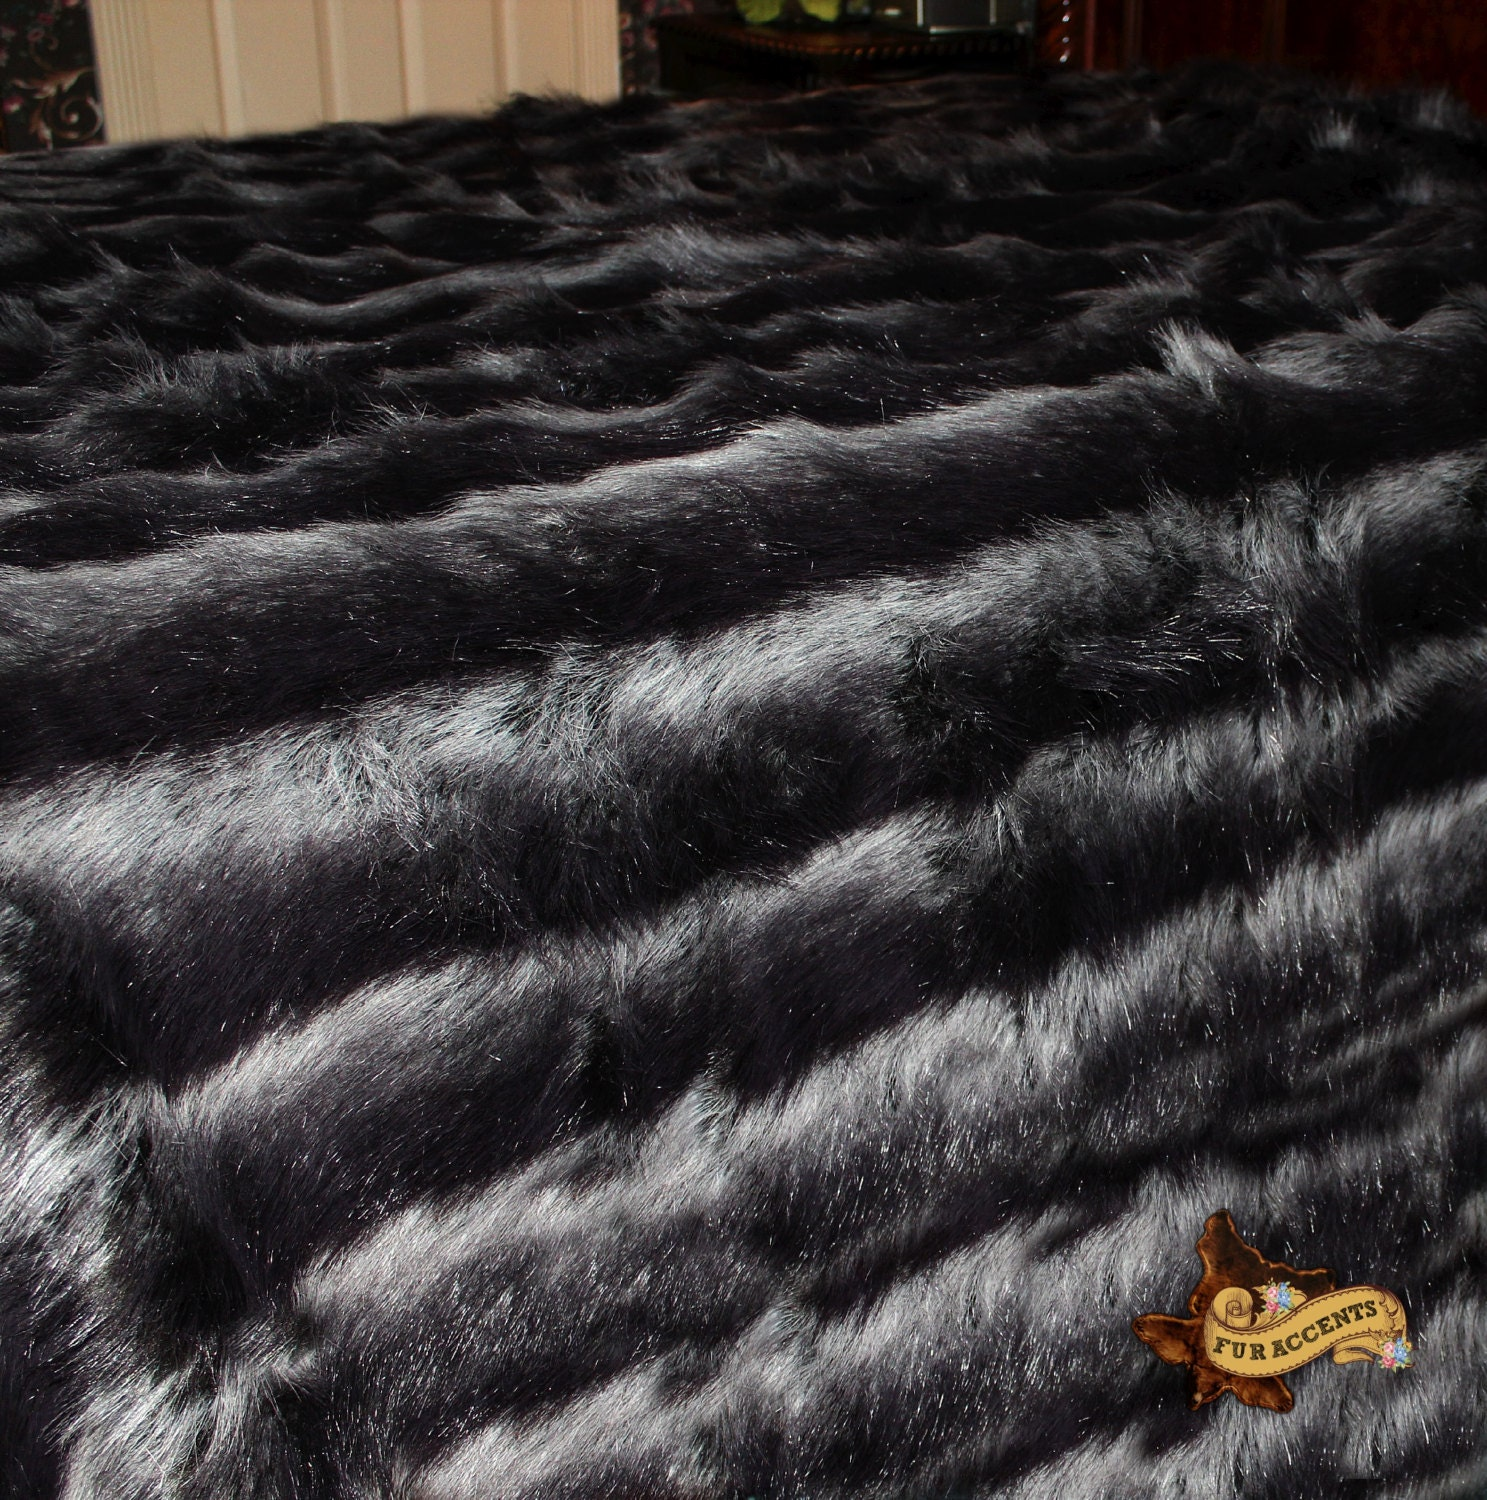 comforter grace throw now fresh buy decor fur l ideas essentials to new best of faux inspirational fall chair sets